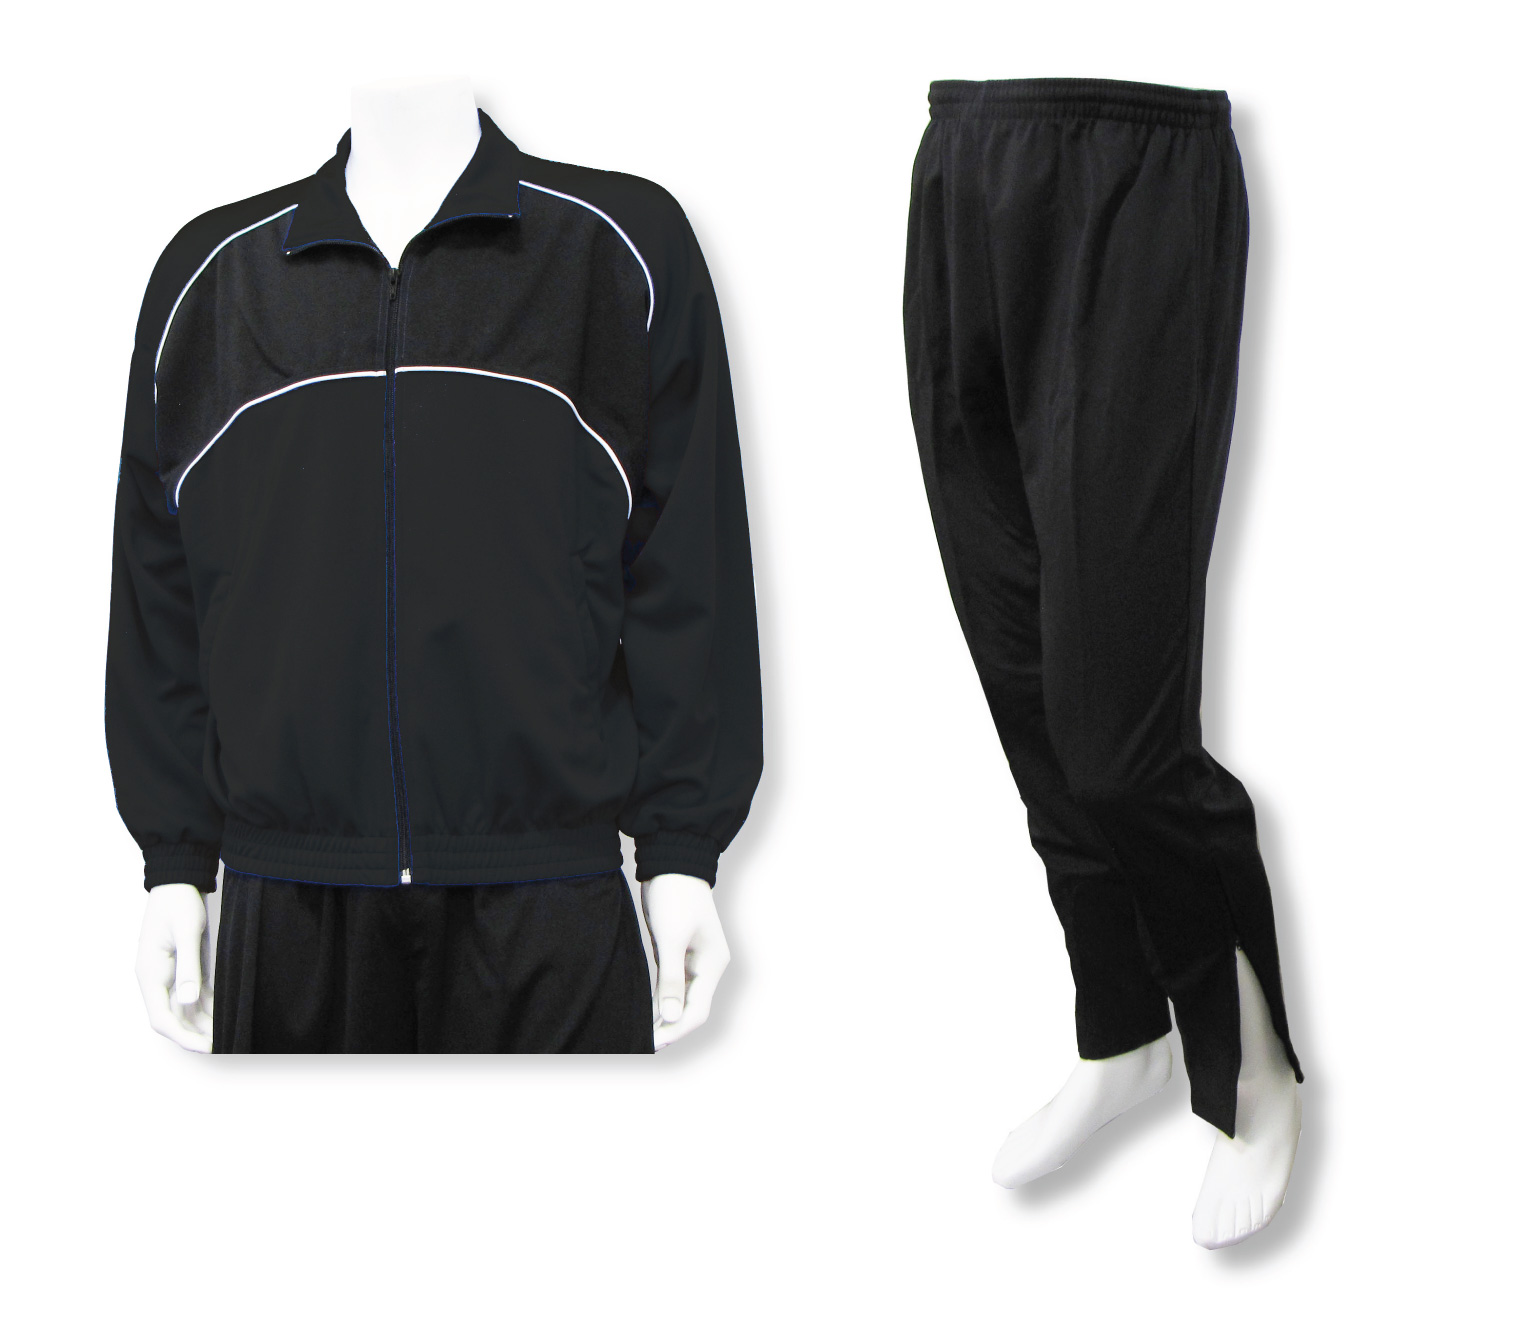 Crossfire soccer warmup set in black by Code Four Athletics